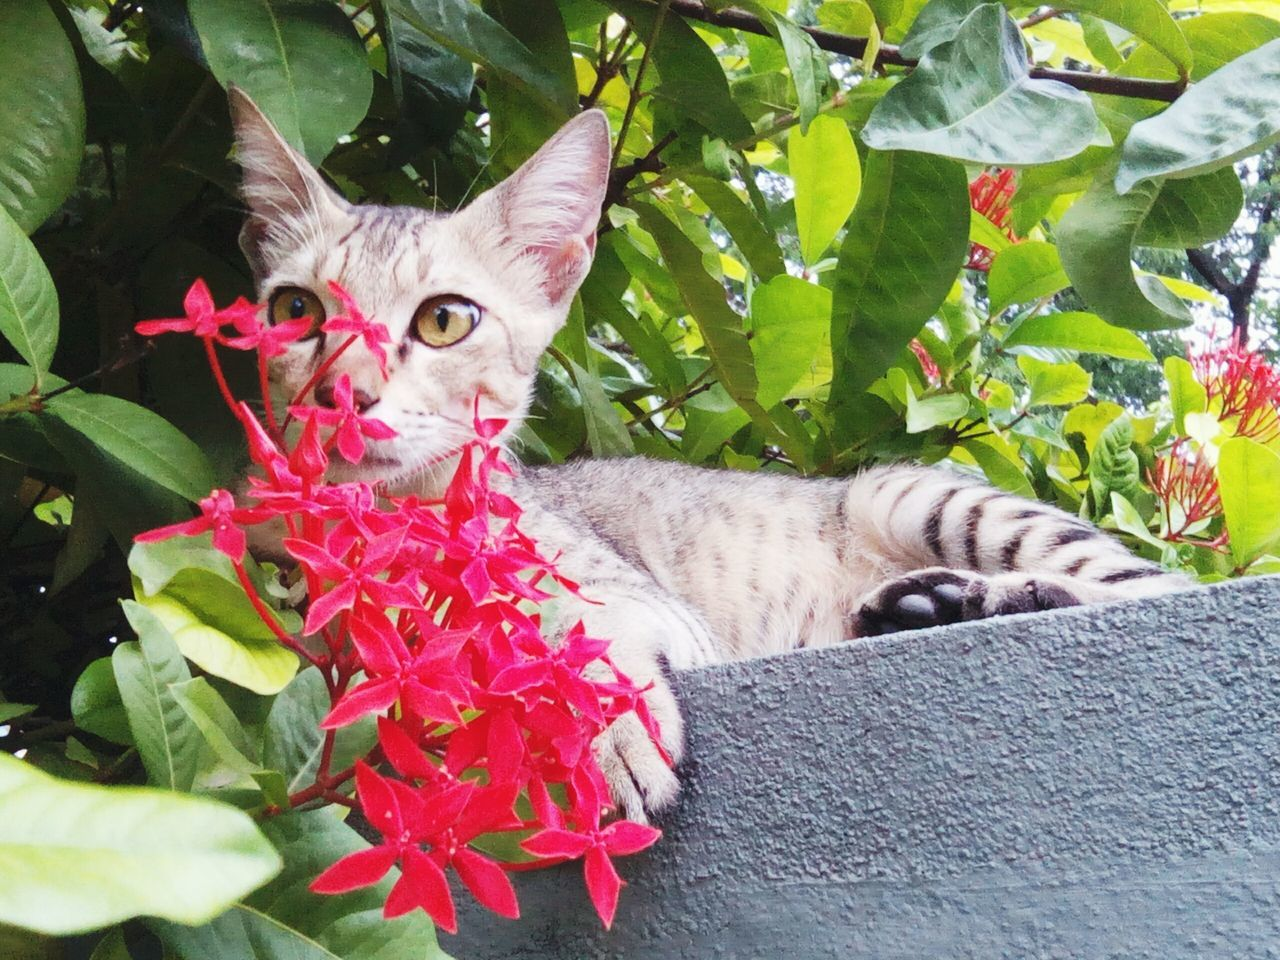 domestic cat, animal themes, pets, feline, mammal, domestic animals, one animal, cat, leaf, looking at camera, flower, plant, portrait, sitting, day, no people, outdoors, growth, nature, close-up